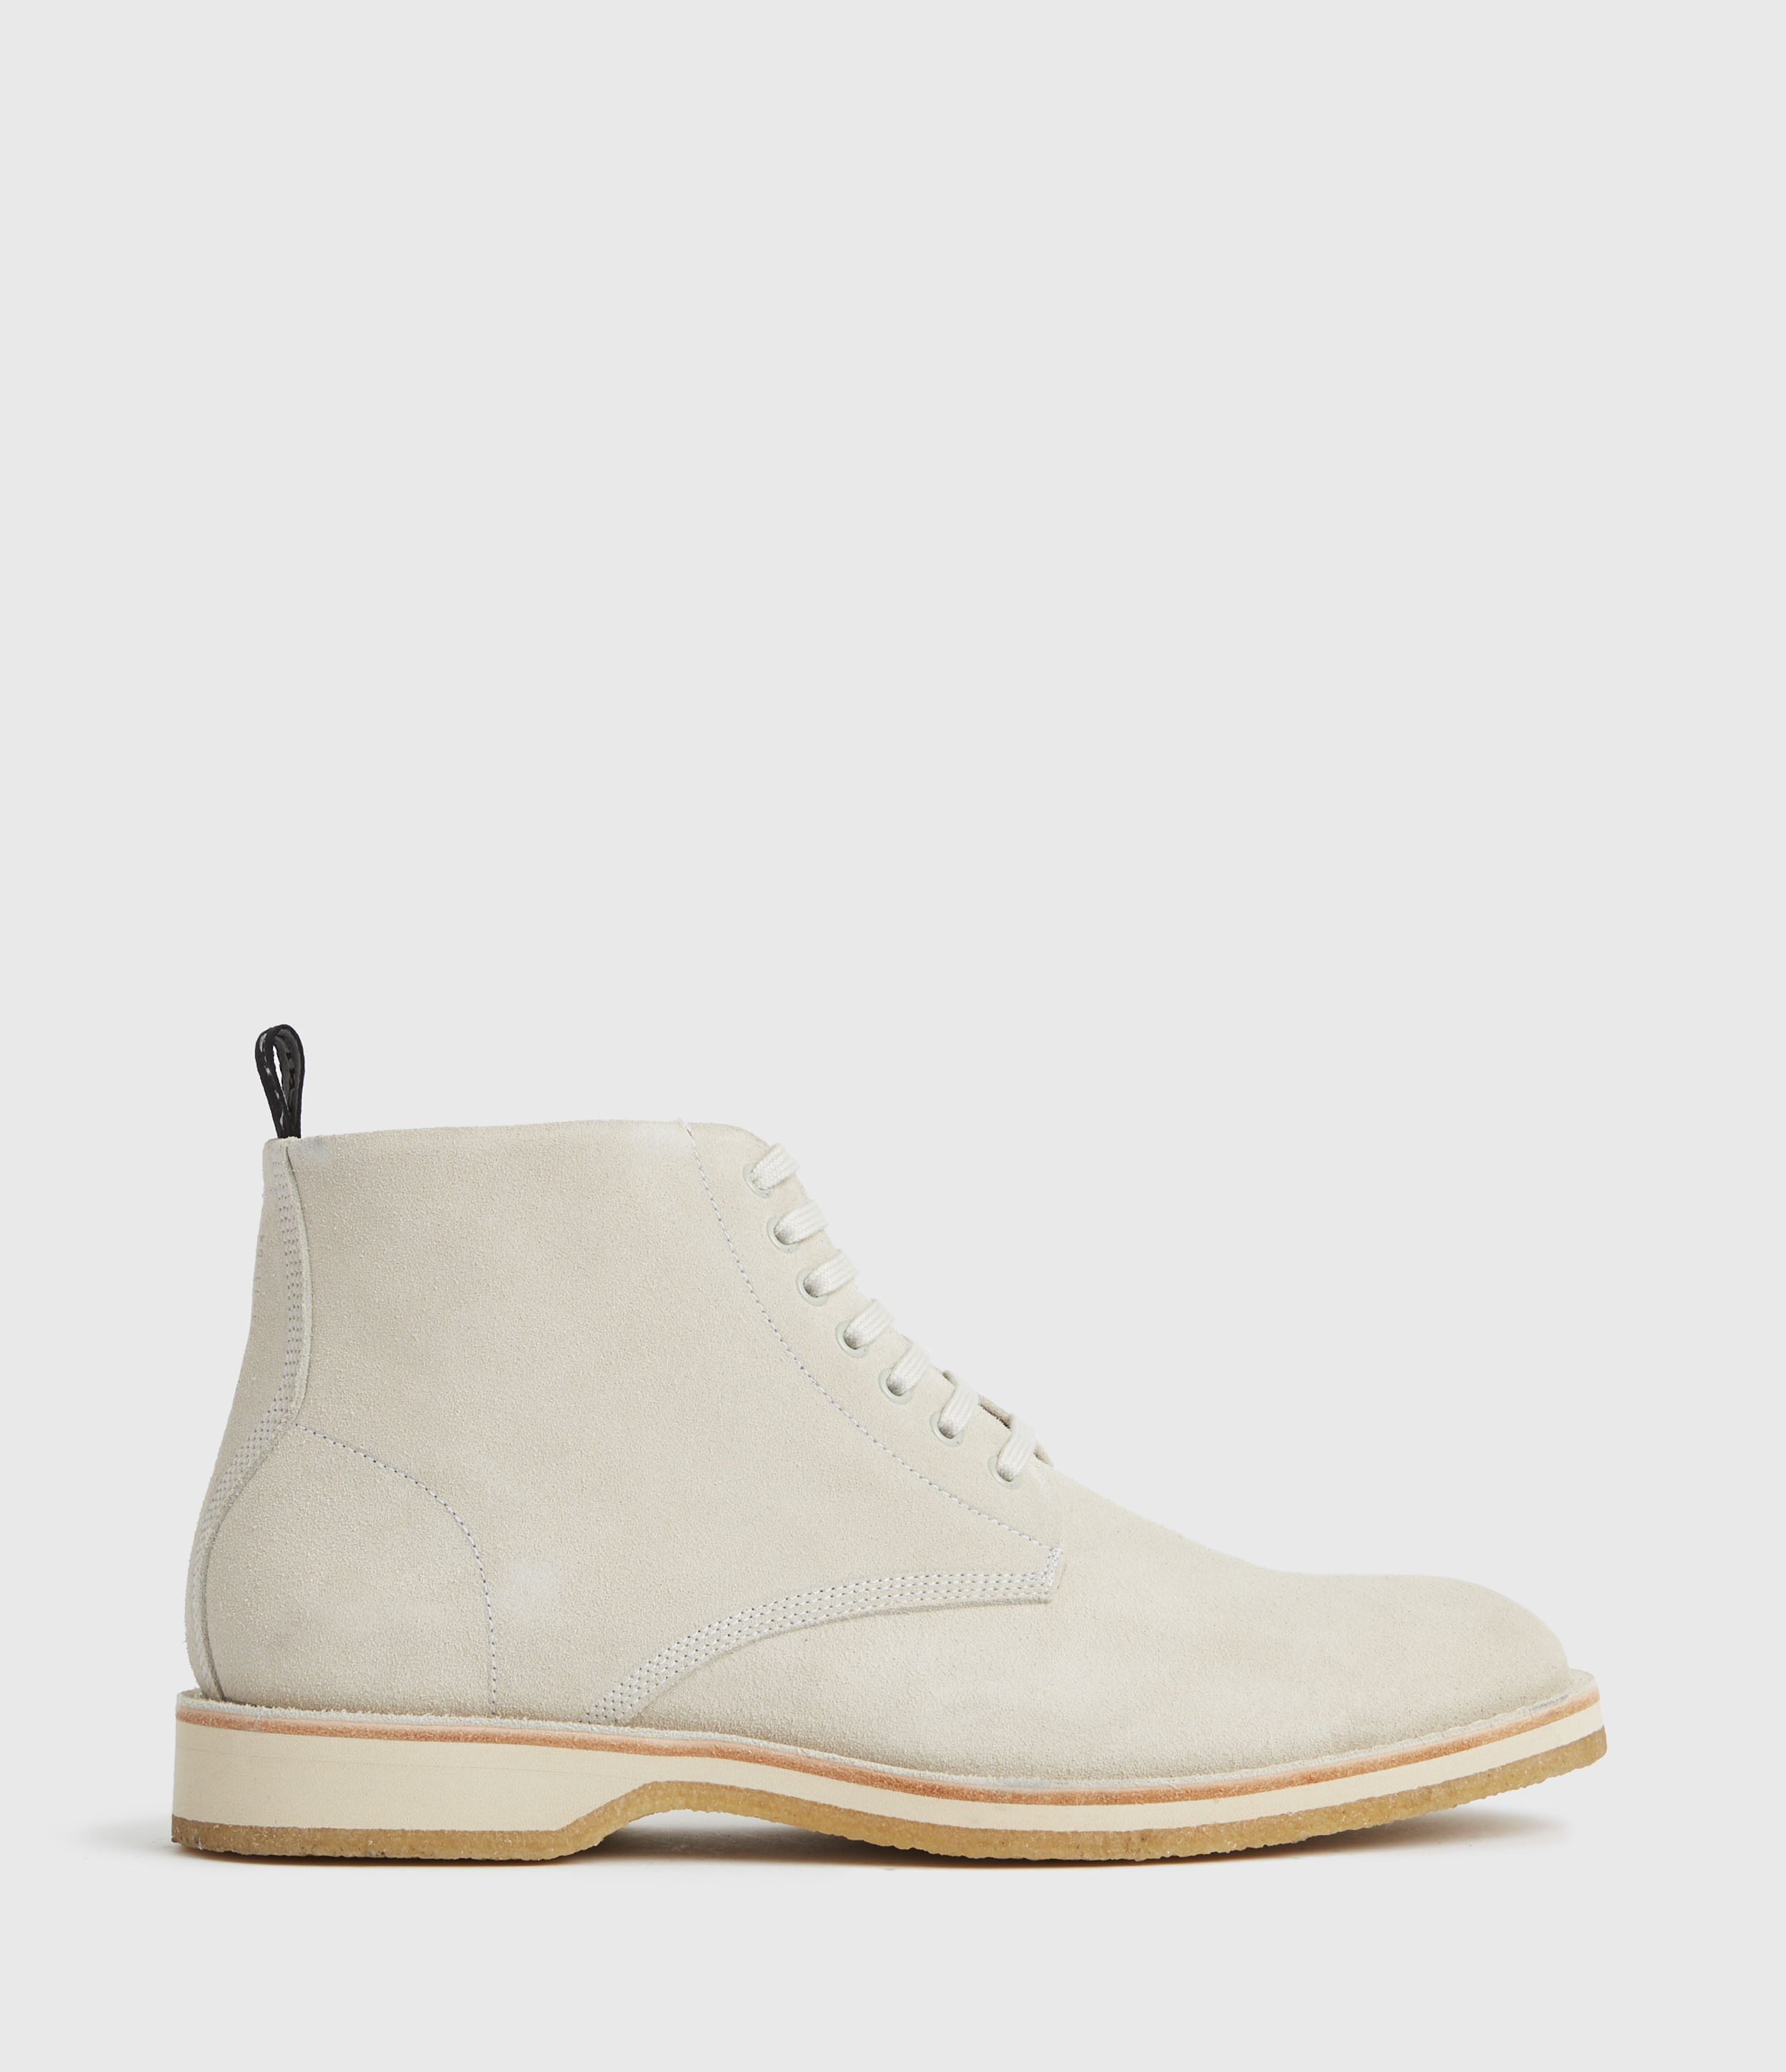 AllSaints Mens Mathias Suede Boots, Off White, Size: UK 9/US 10/EU 43